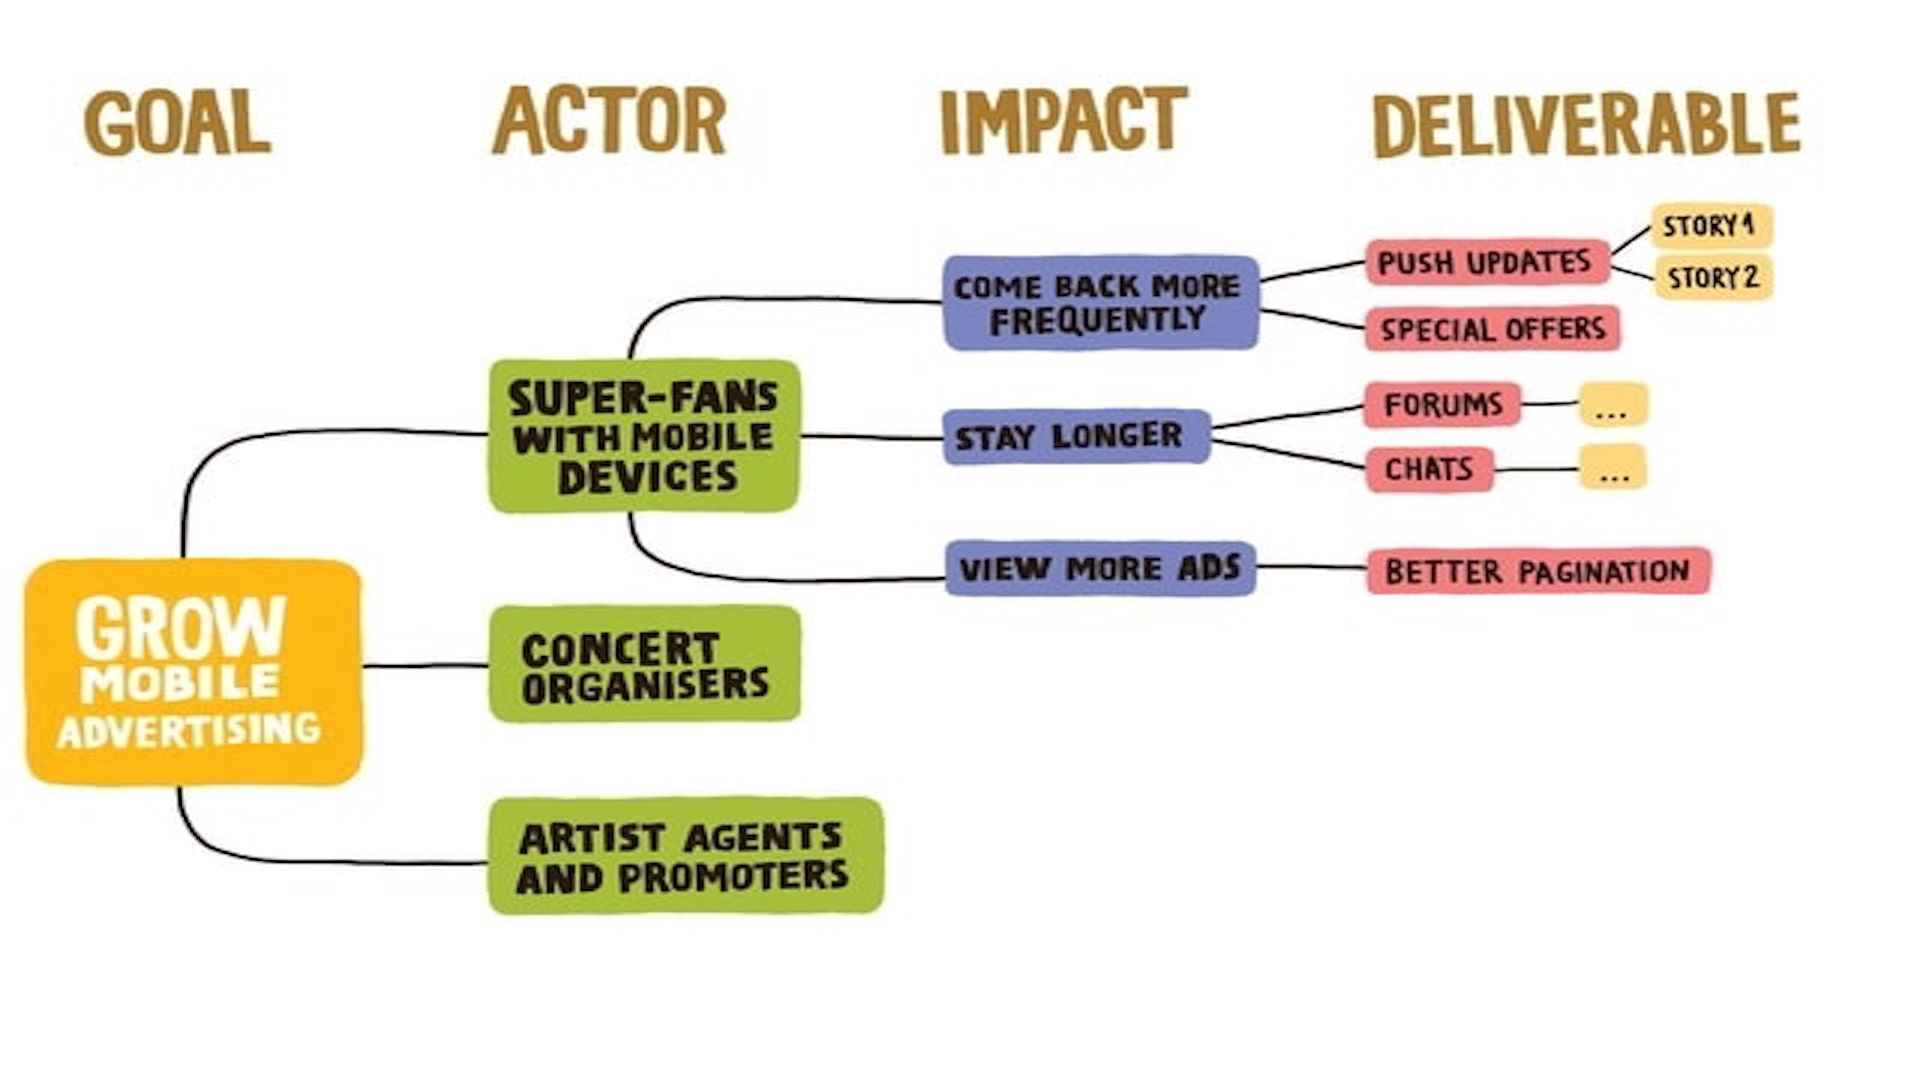 An impact map with colourful bubbles outlining steps to grow mobile advertising for an online concert platform.